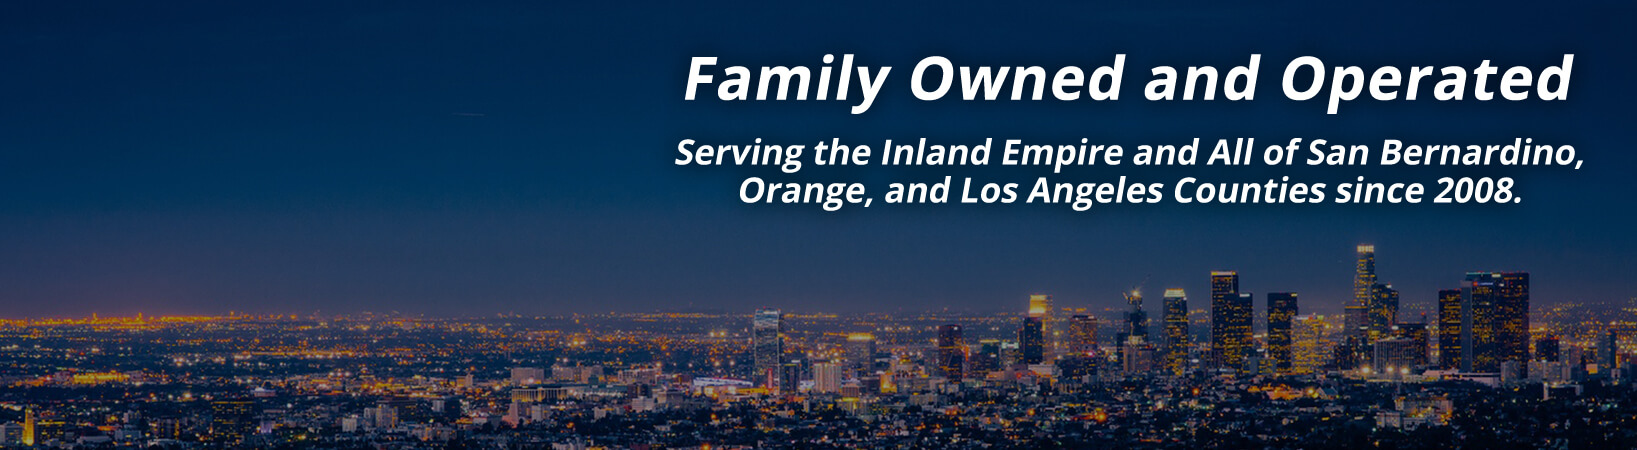 Family owned and operated, Empire Motors has been serving the Inland Empire, San Bernardino, Orange, and Los Angeles counties since 2008.